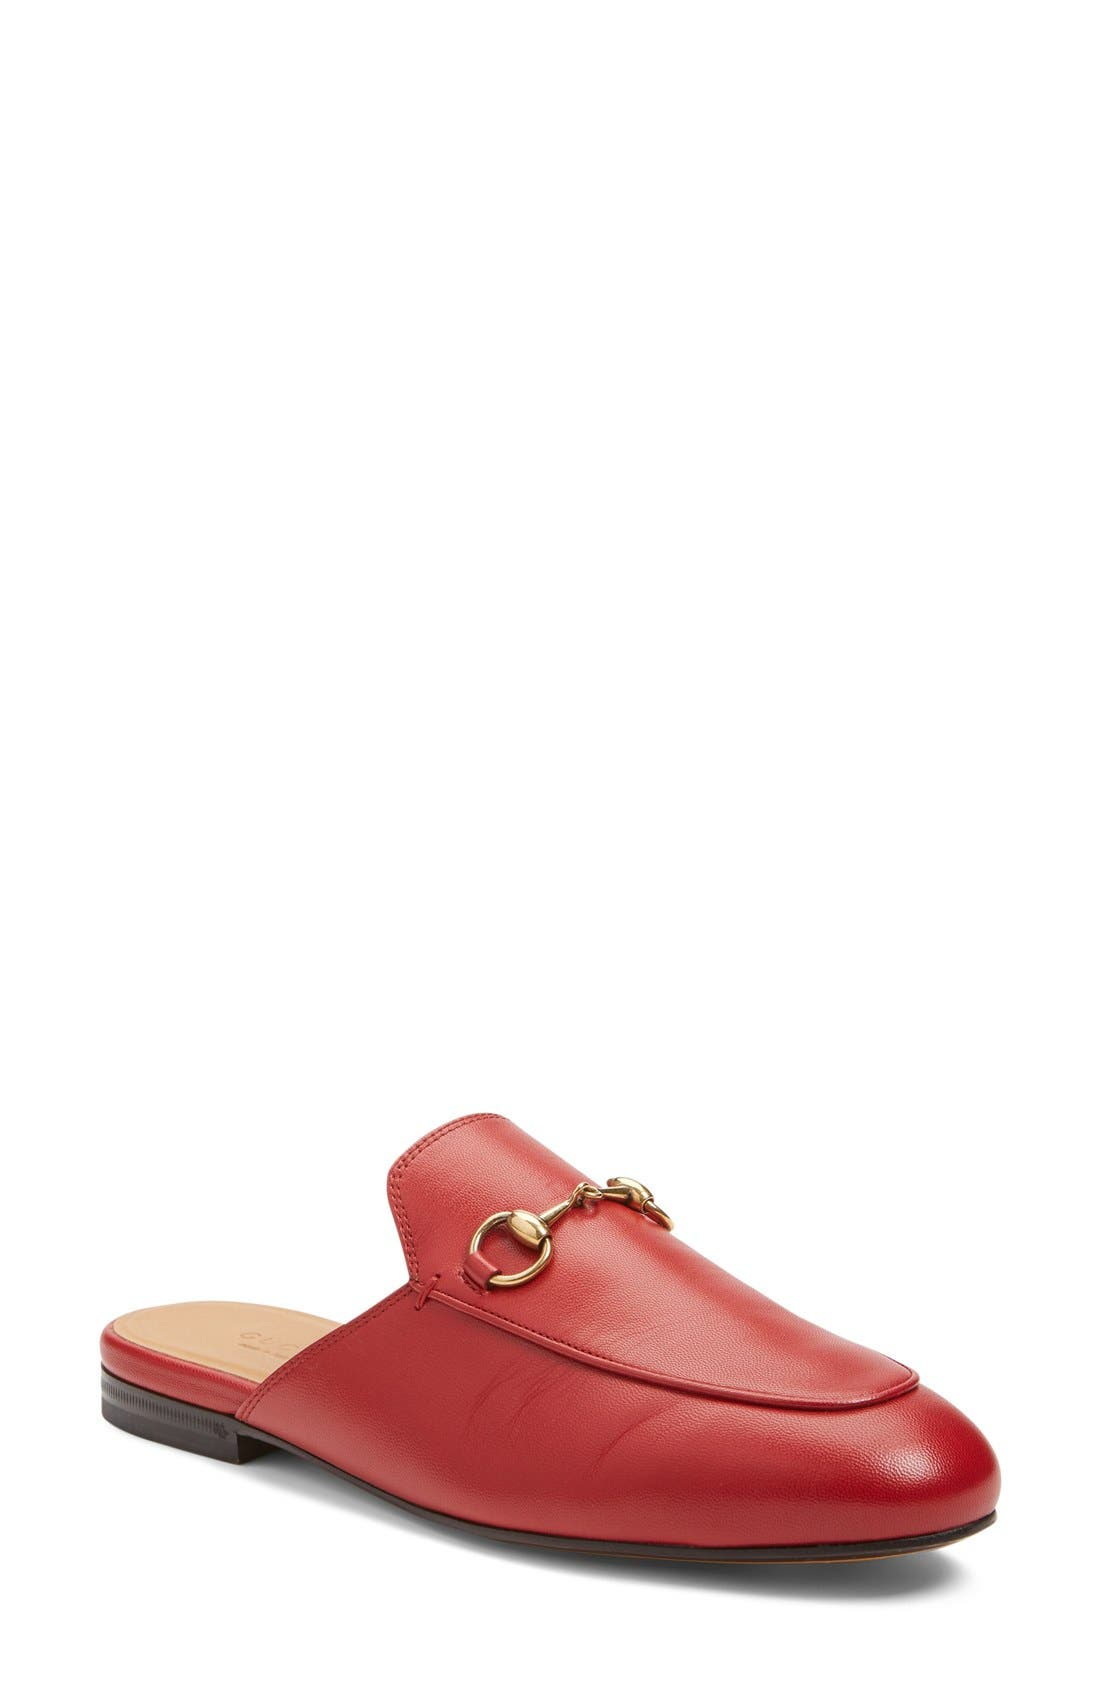 Princetown Loafer Mule,                             Main thumbnail 1, color,                             RED LEATHER